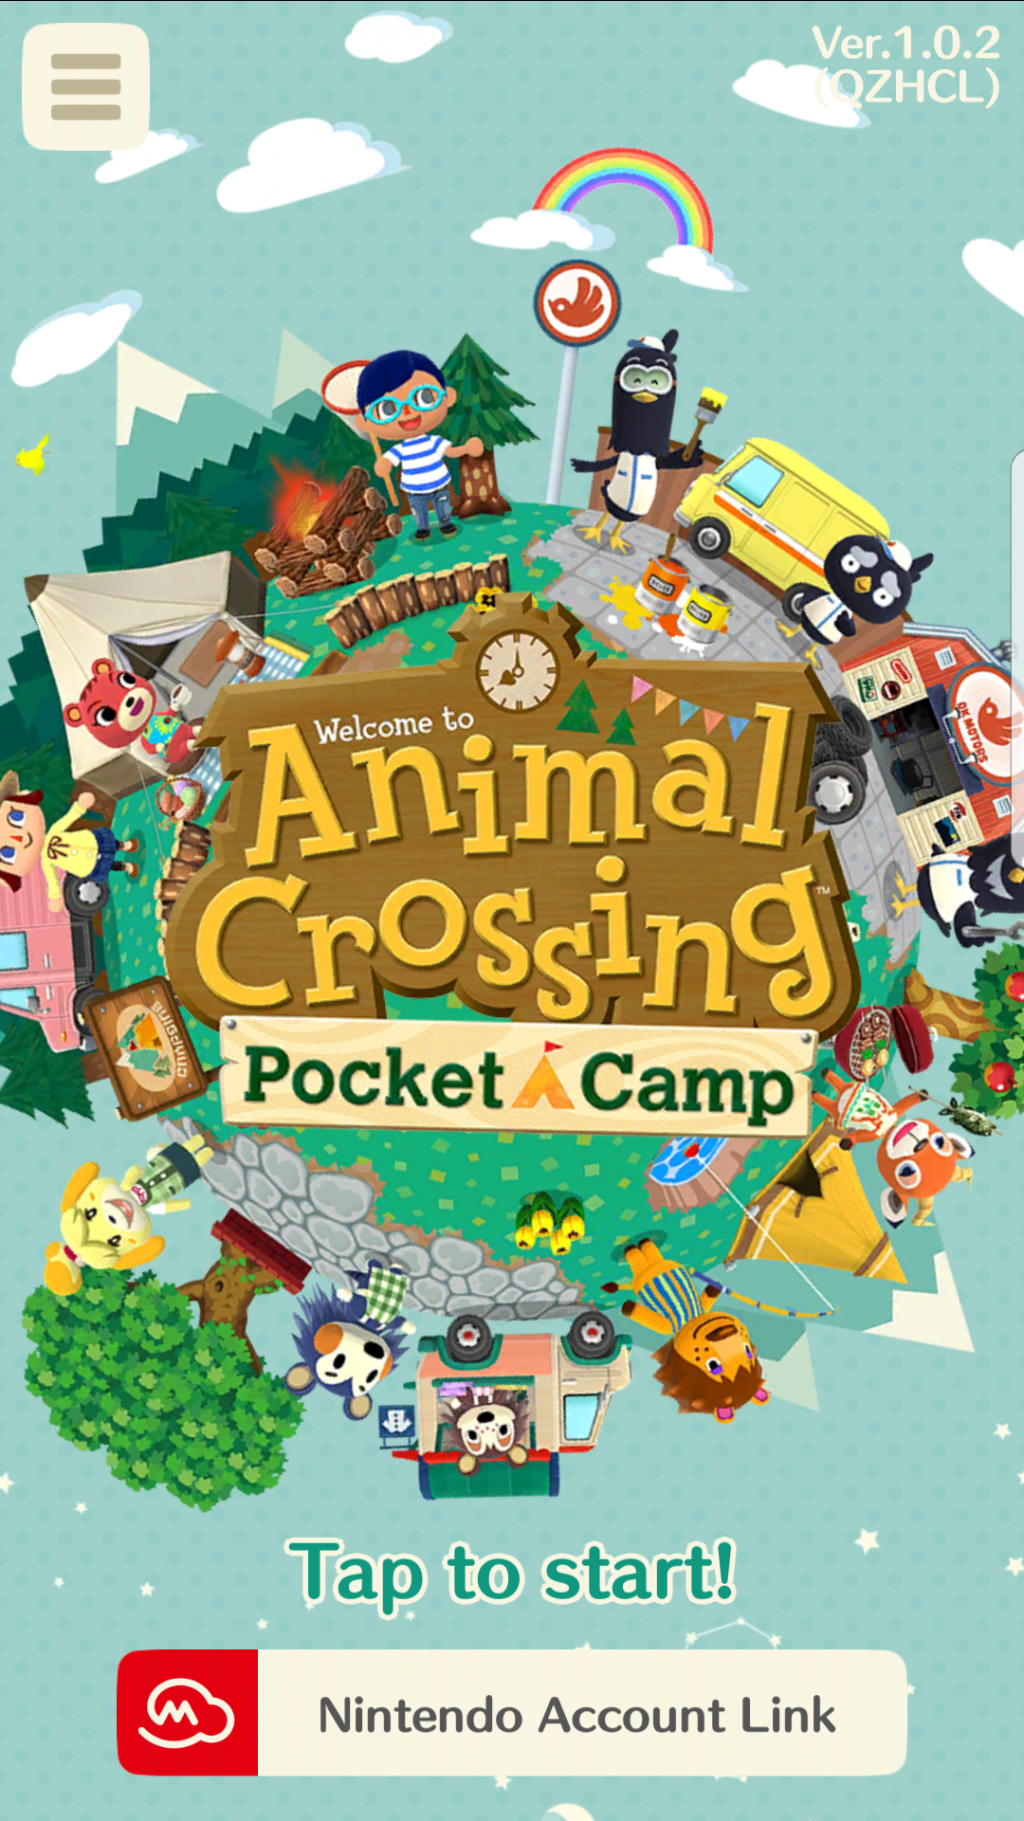 Animal Crossing: Pocket Camp solid despite issues